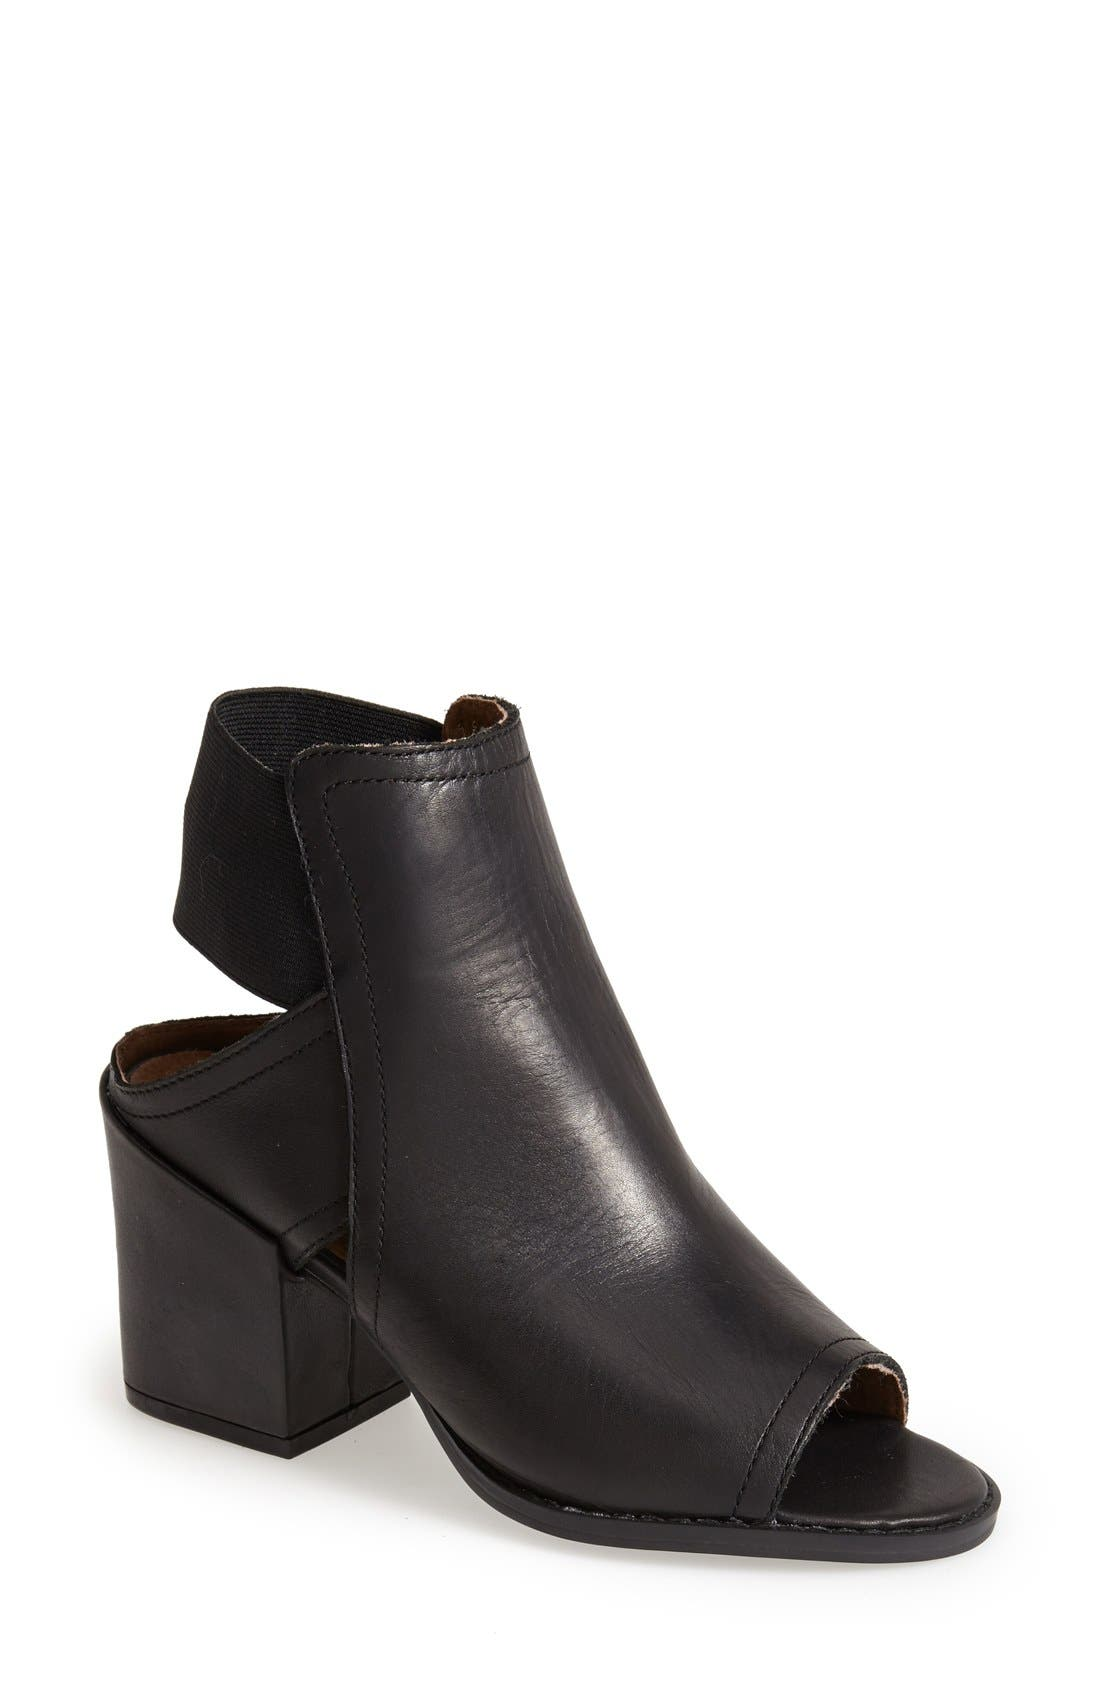 SIXTYSEVEN 'Polly' Open Toe Bootie, Main, color, 001